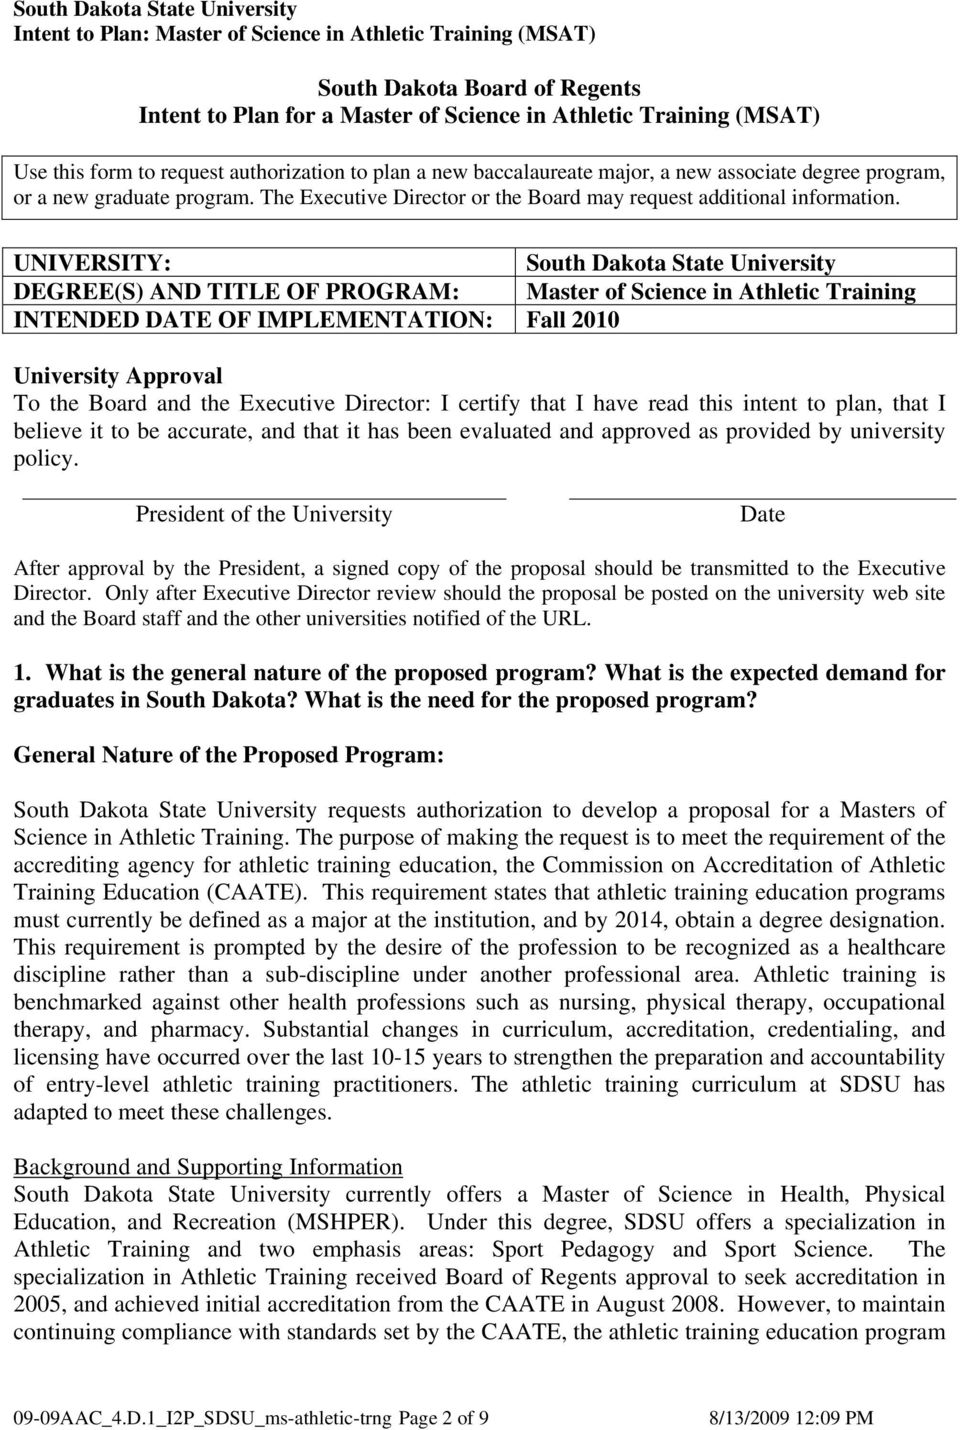 UNIVERSITY: South Dakota State University DEGREE(S) AND TITLE OF PROGRAM: Master of Science in Athletic Training INTENDED DATE OF IMPLEMENTATION: Fall 2010 University Approval To the Board and the